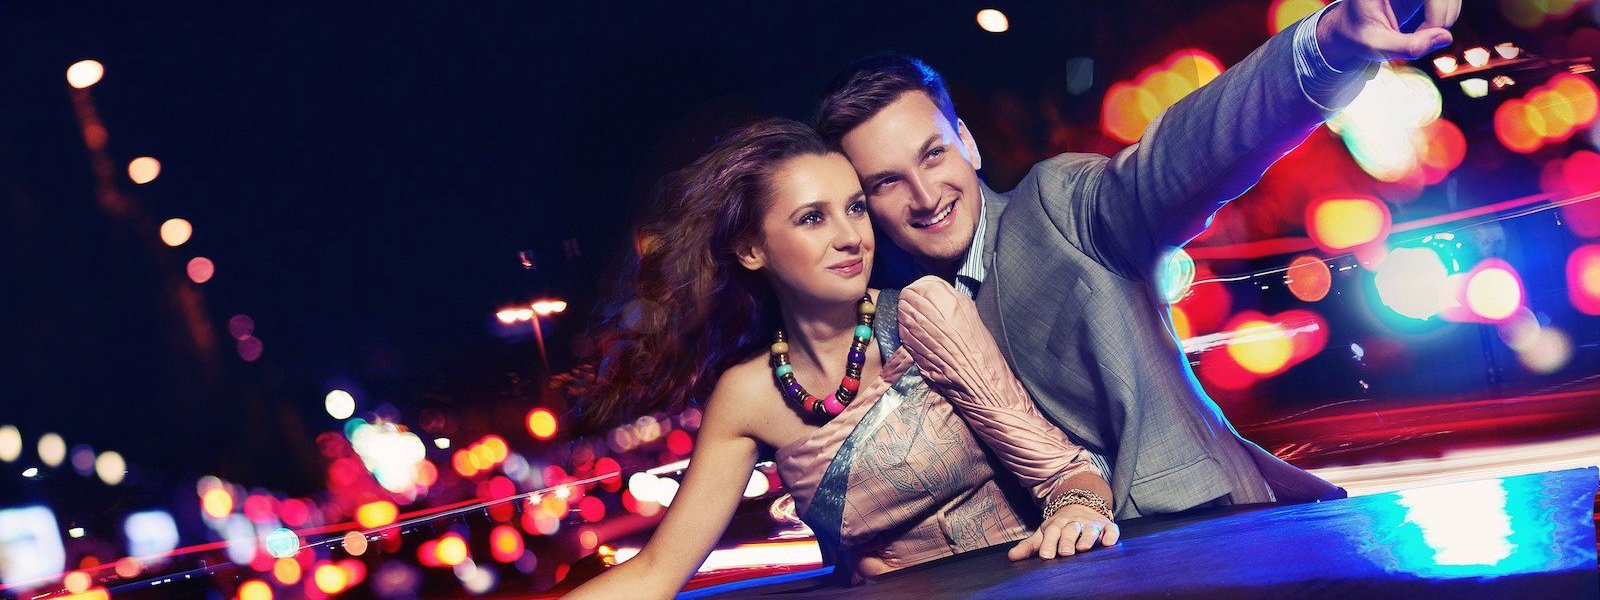 dating services in orlando fl